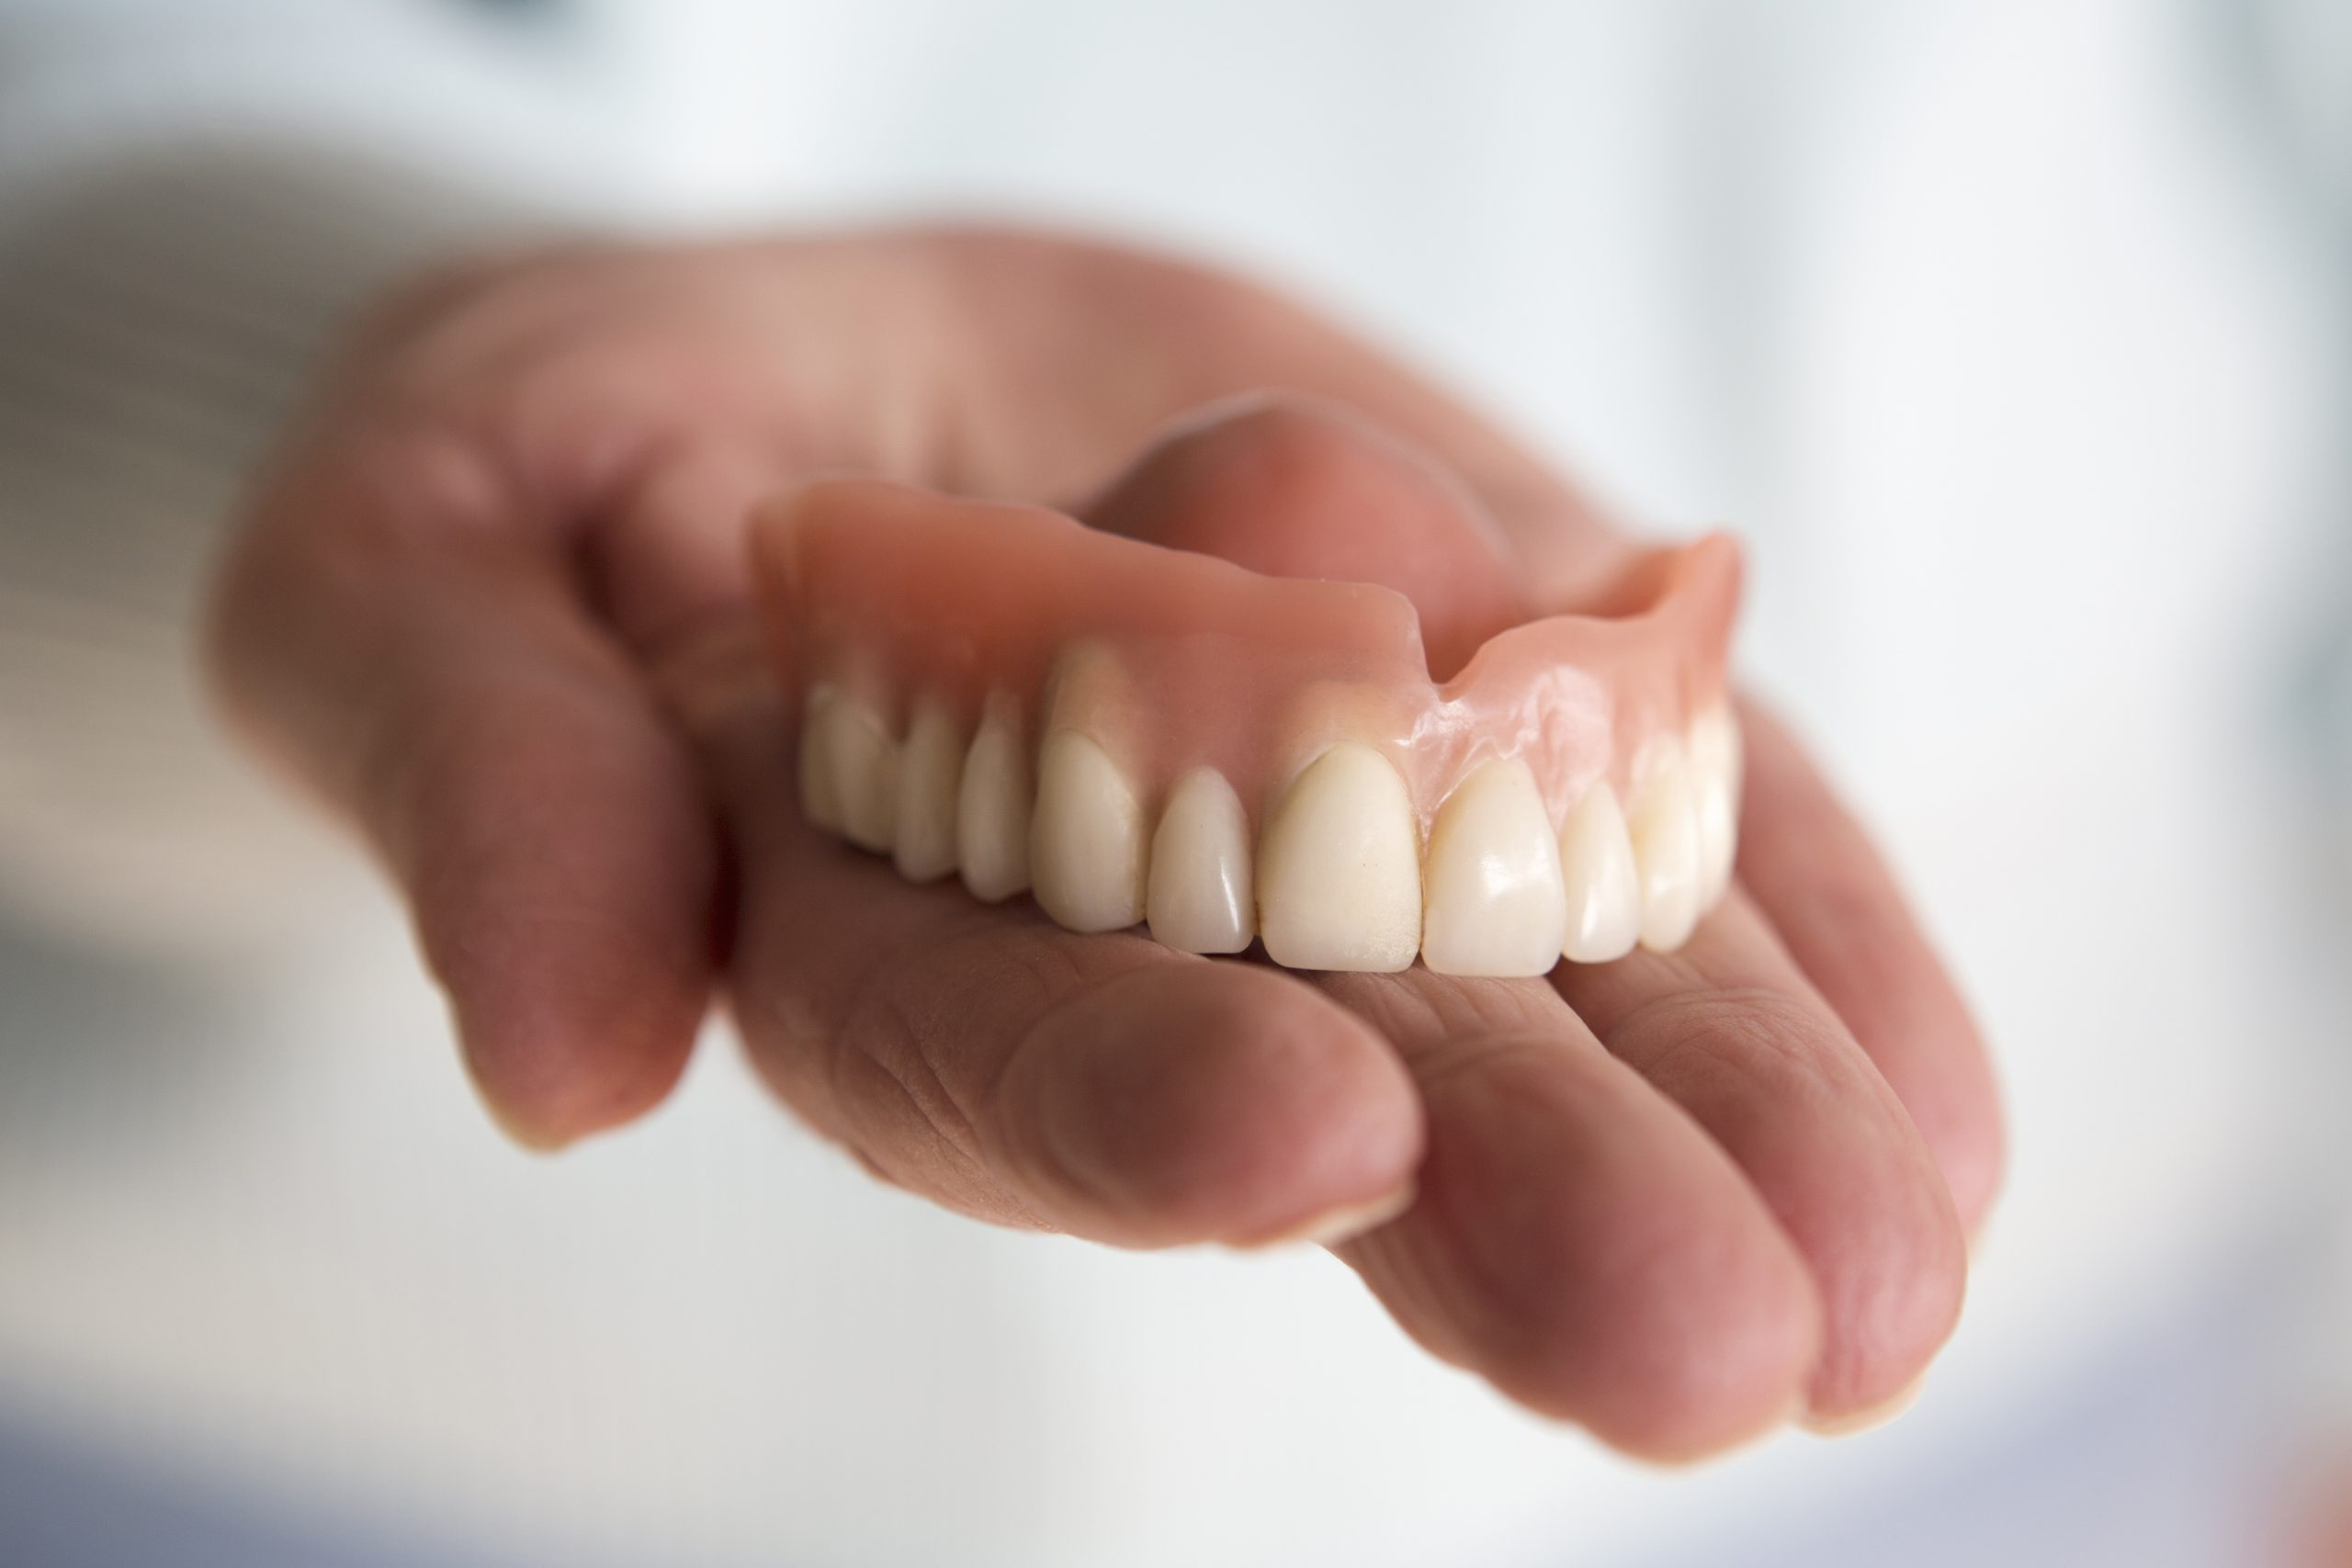 Closeup of dentures in a woman's hand